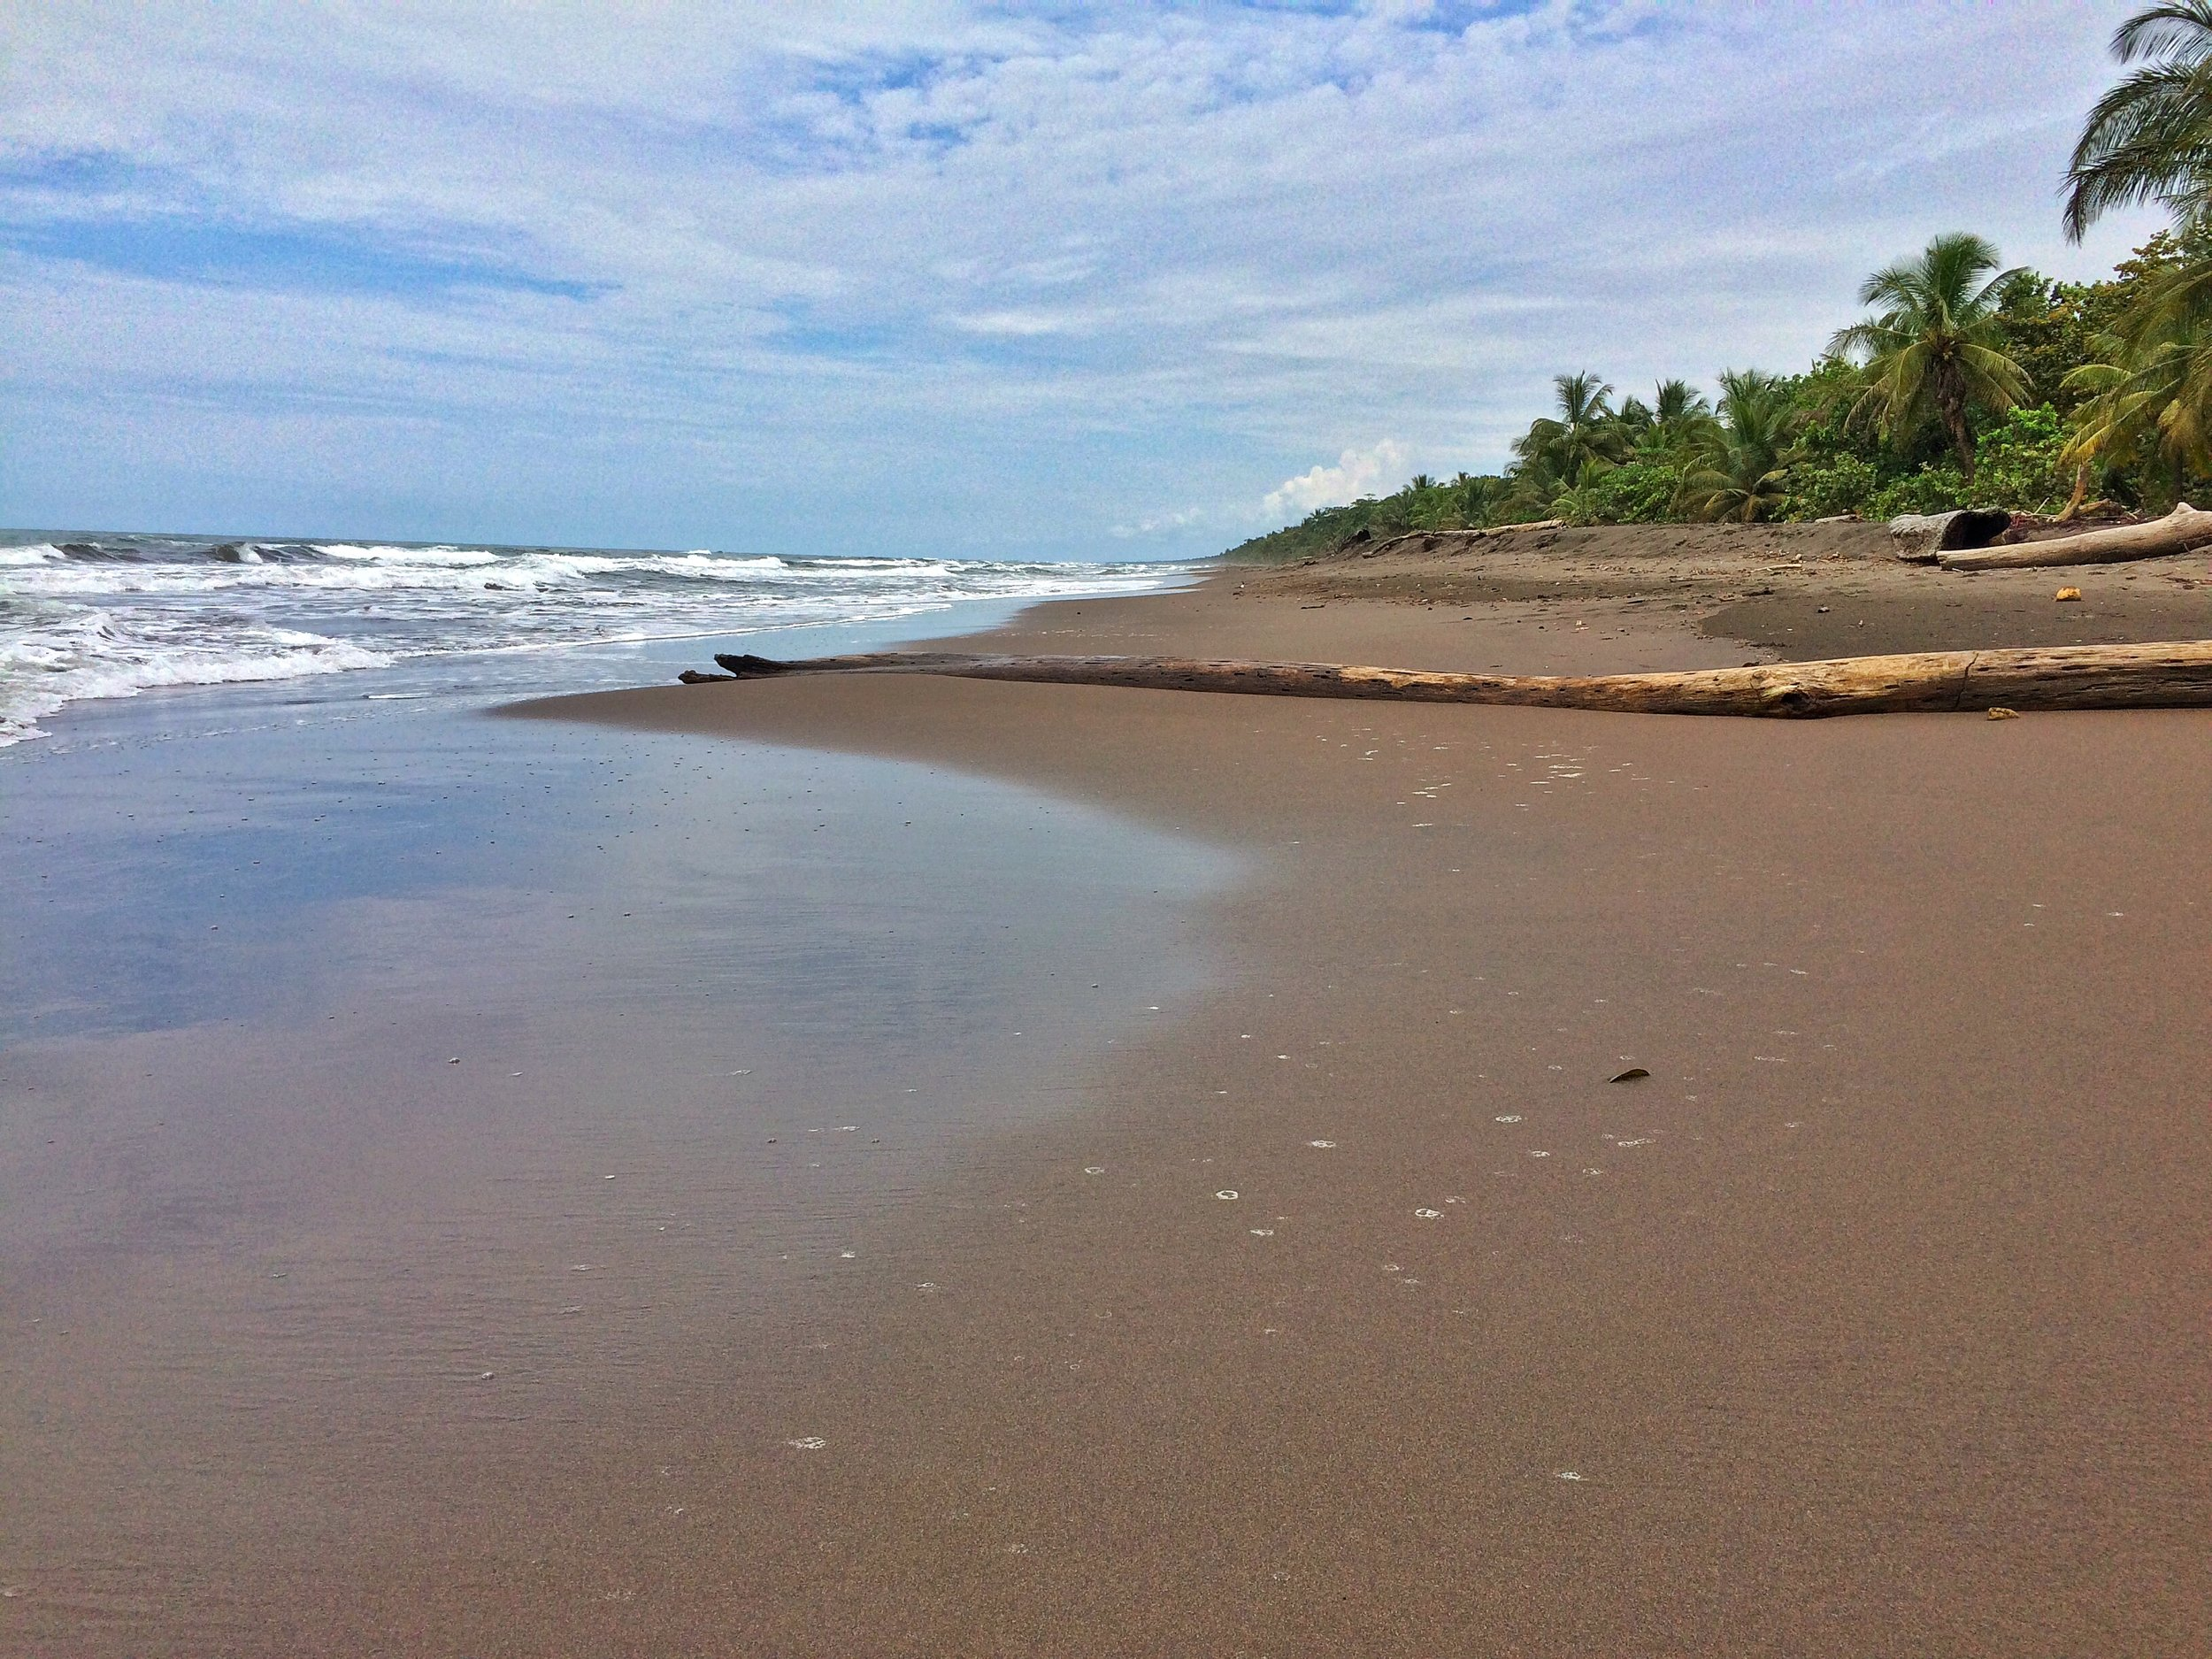 Tortuguero National Park along Costa Rica's Atlantic Coast has stunning jungle bordered beaches.